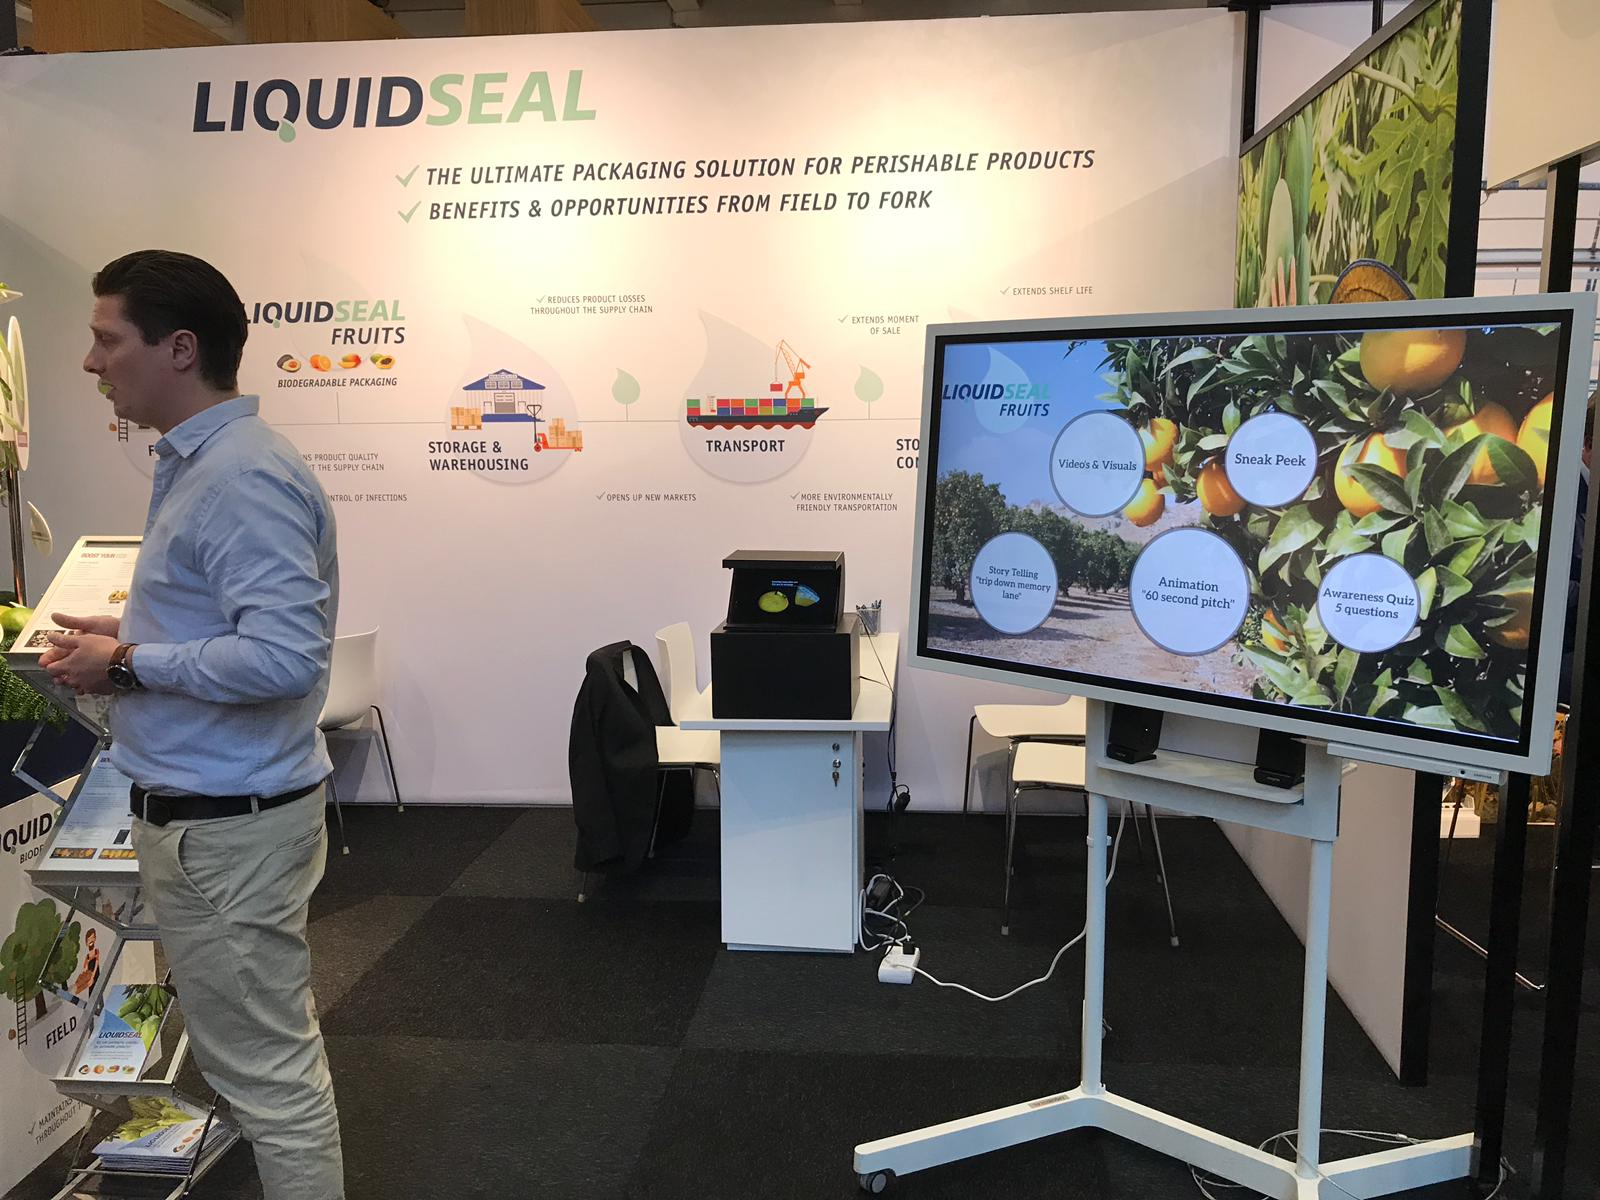 LiquidSeal Fruit exhibition